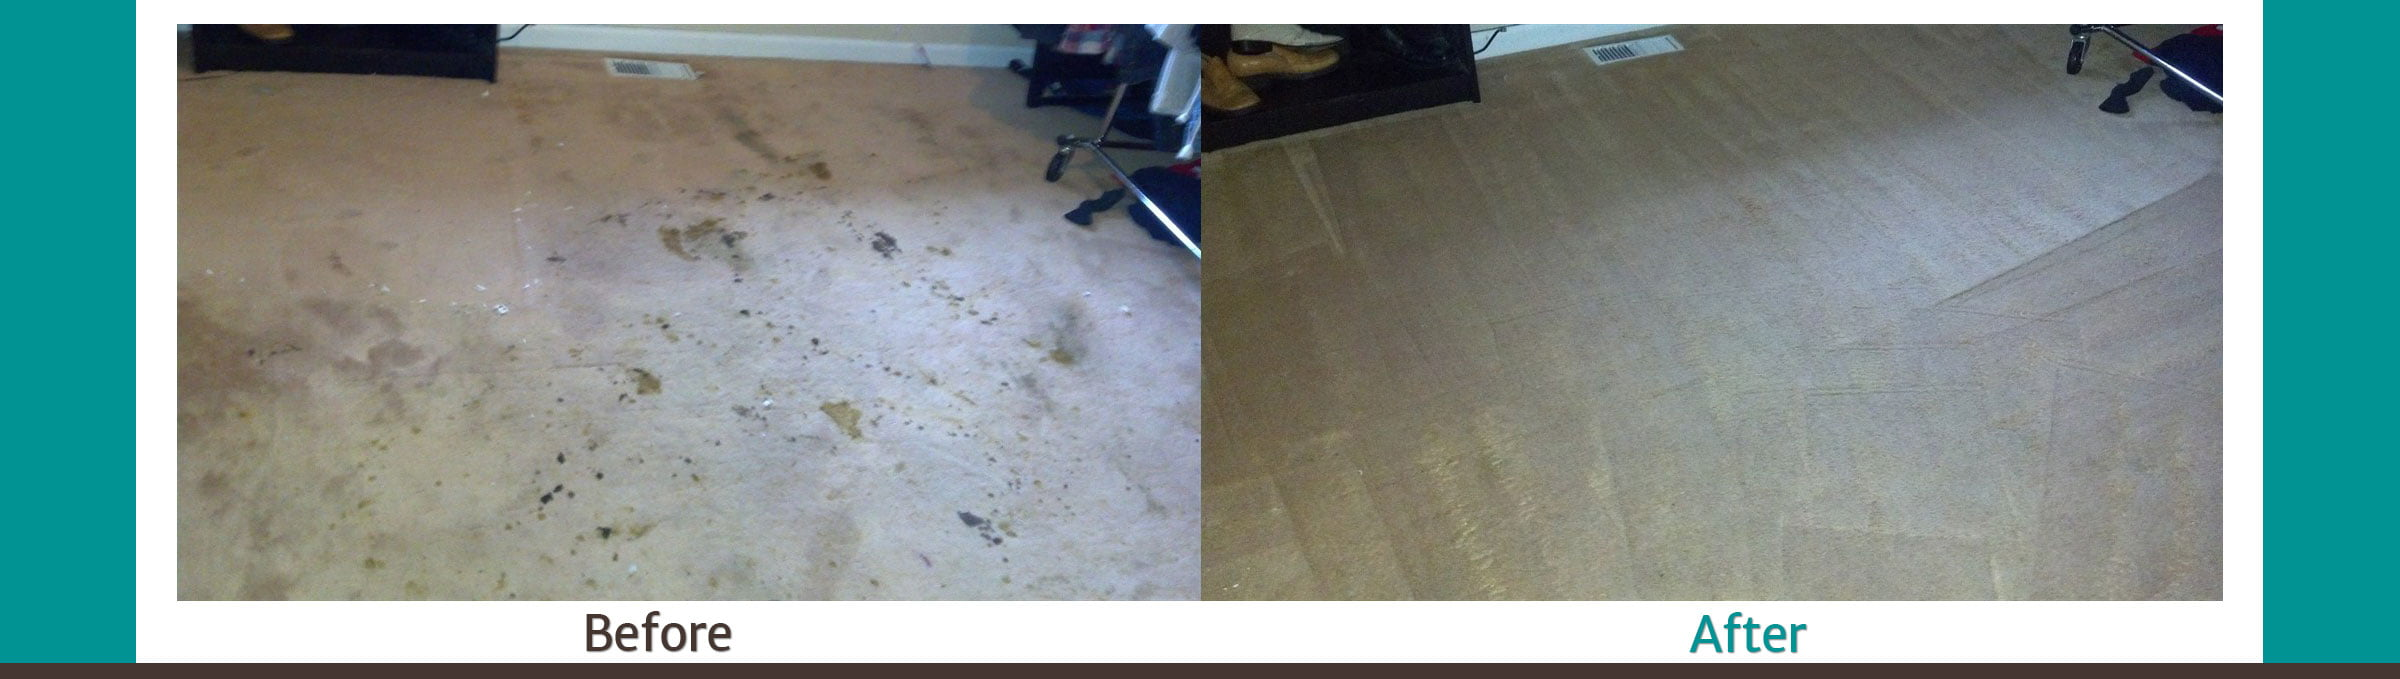 Carpet Cleaning Vancouver Wa 1000 5 Star Reviews Web